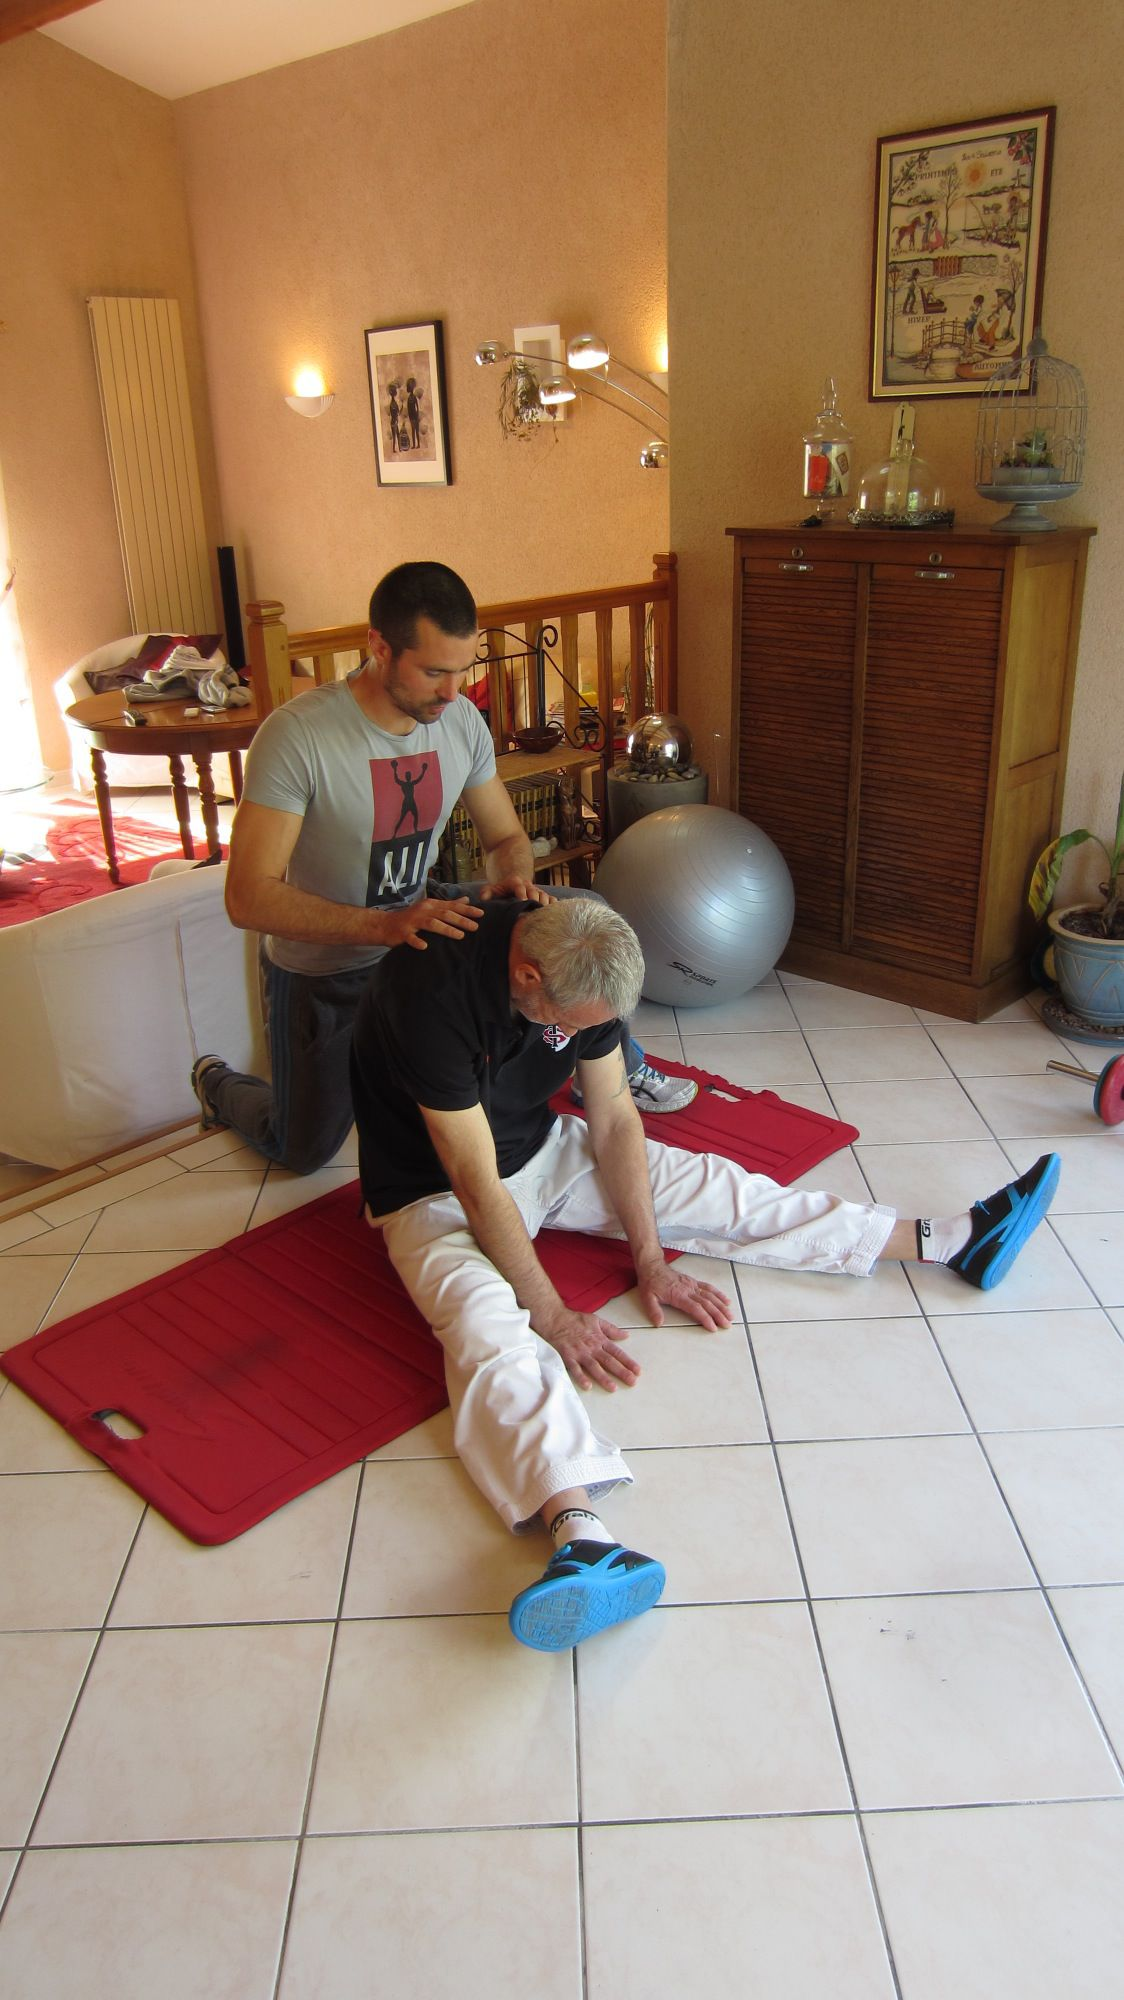 exemple exercice de stretching 1